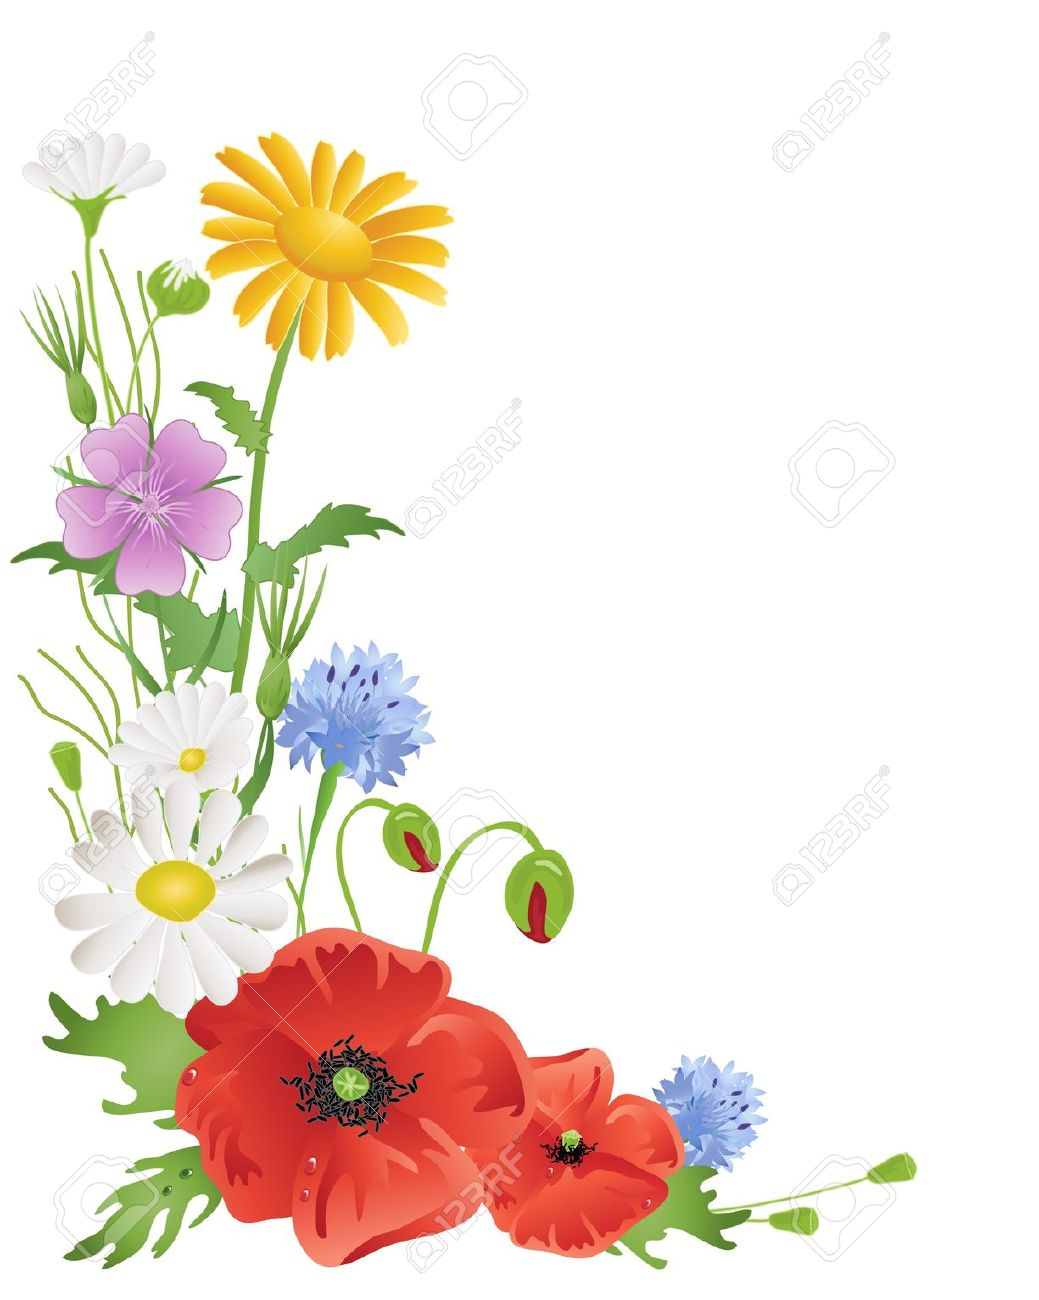 An Illustration Of An Arrangement Of Annual Wildflowers With.